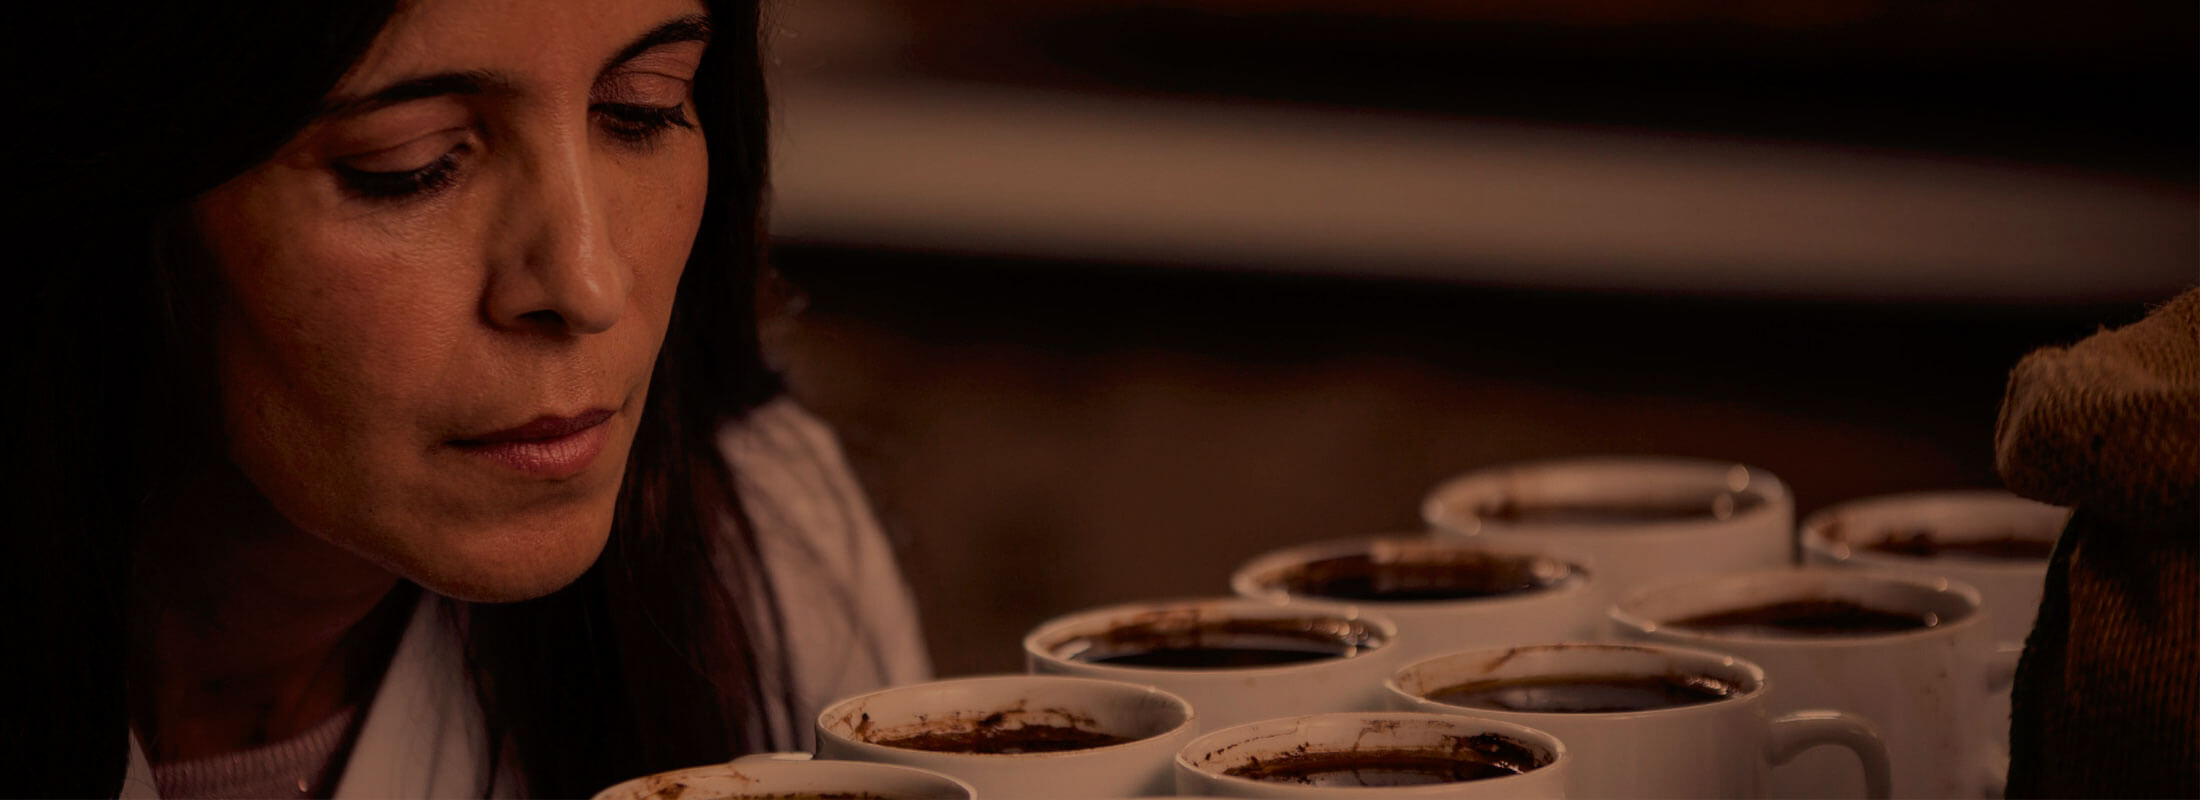 Our Passion, Your Coffee